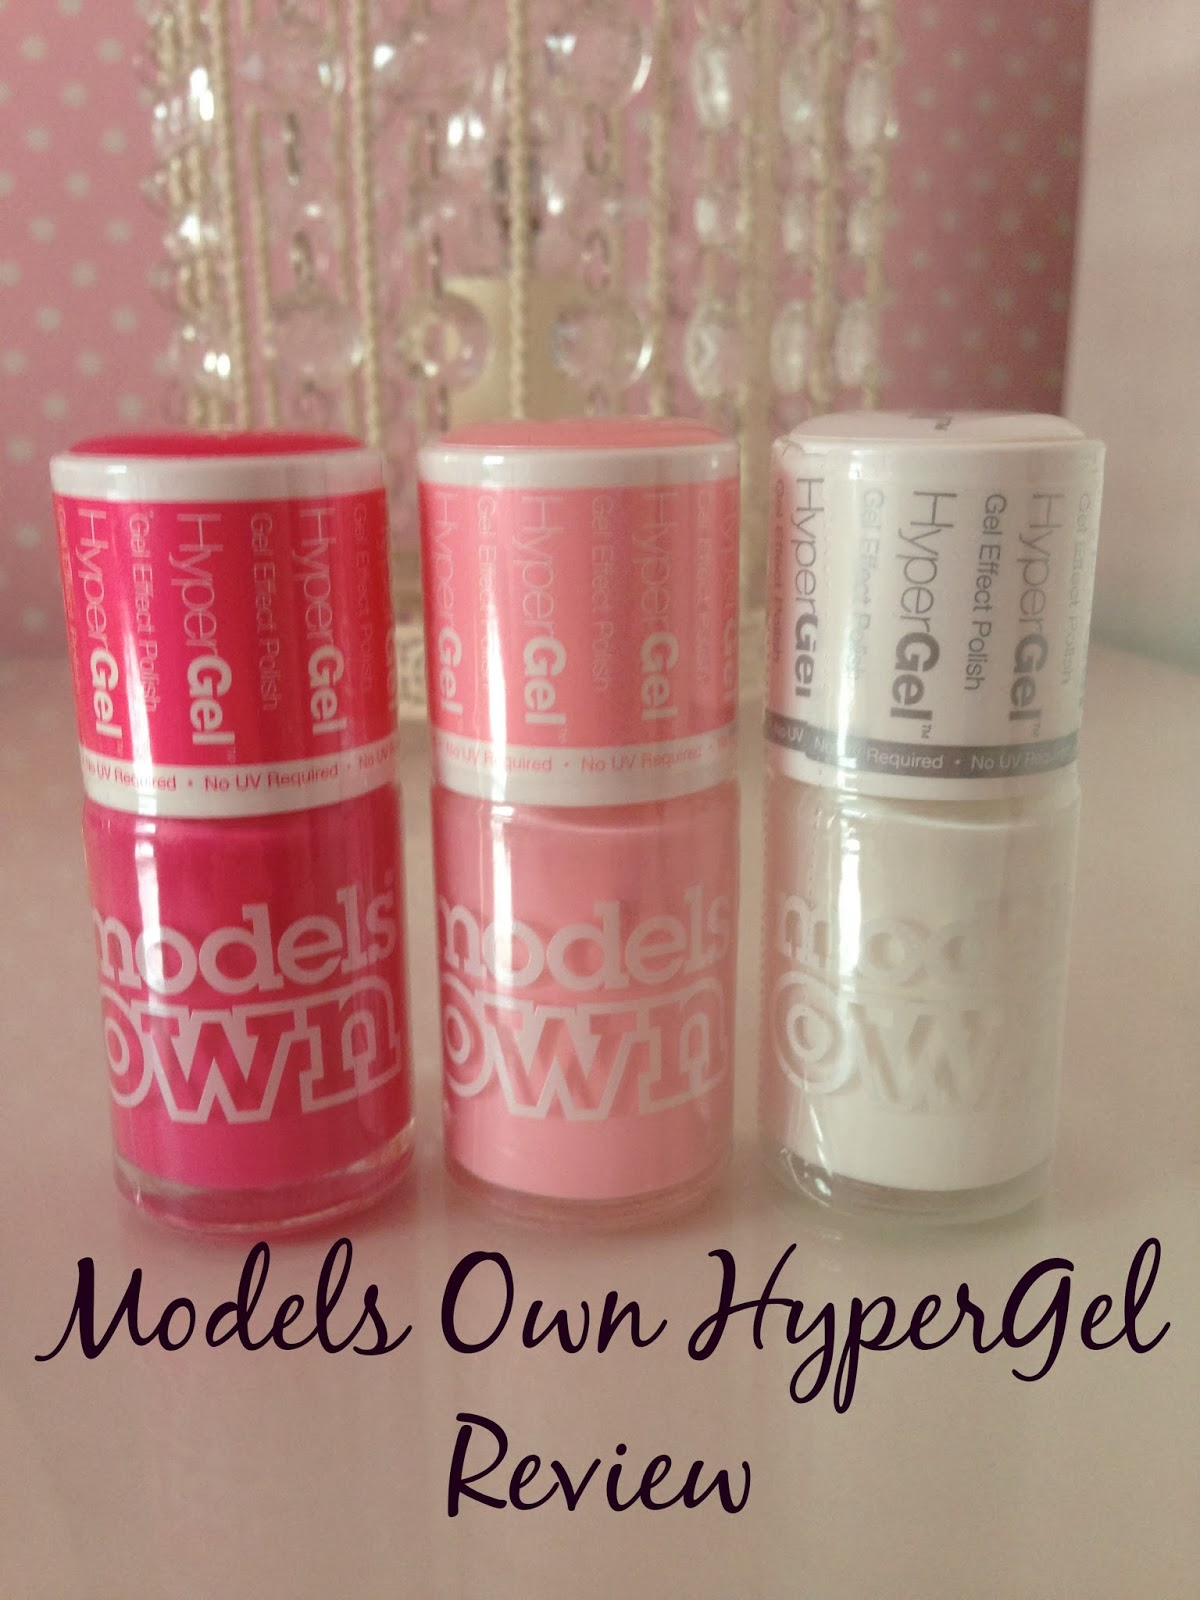 Models Own Hyper Gel Nail Polishes ~ My Thoughts - Mammaful Zo ...